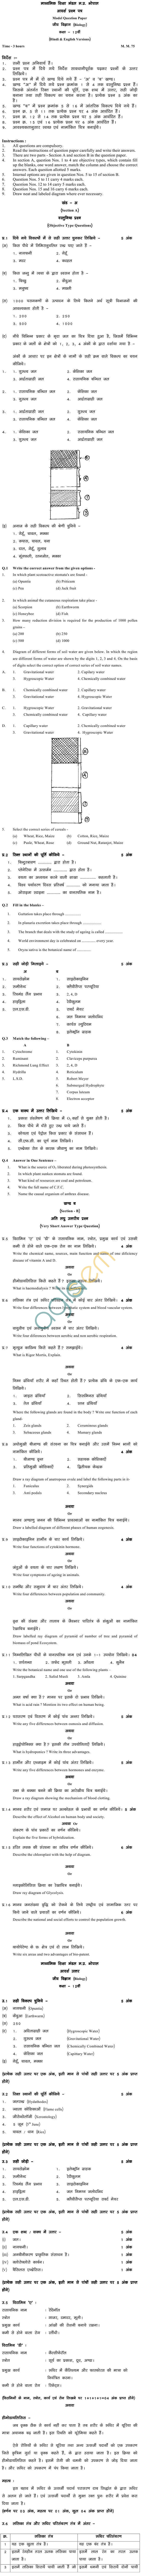 MP Board Class XII Biology Model Questions & Answers - Set 4